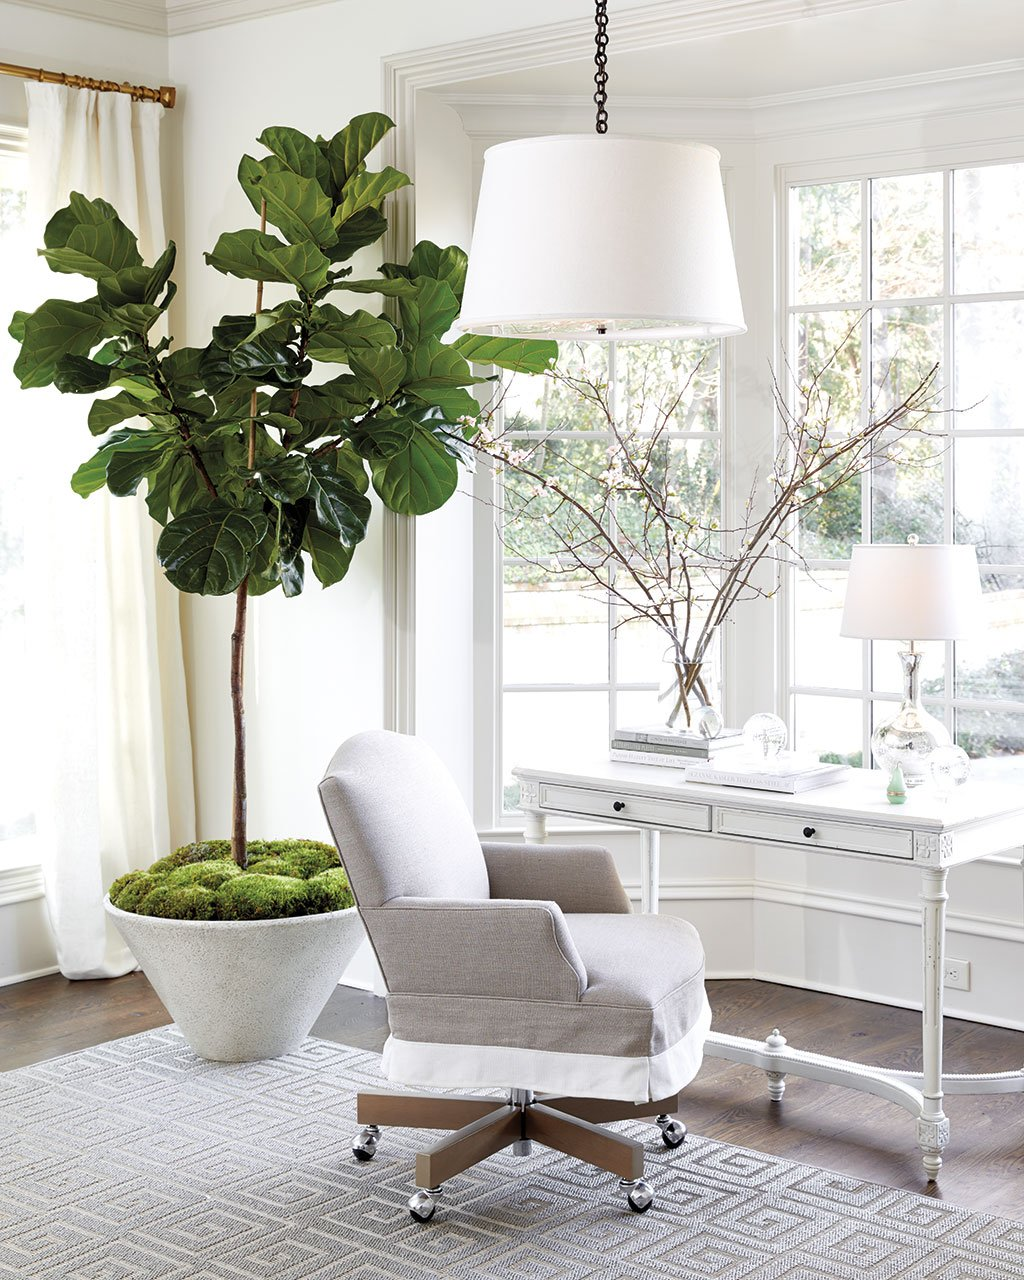 Suzanne Kasler Summer 2017 Inspiration With Suzanne Kasler  How To Decorate